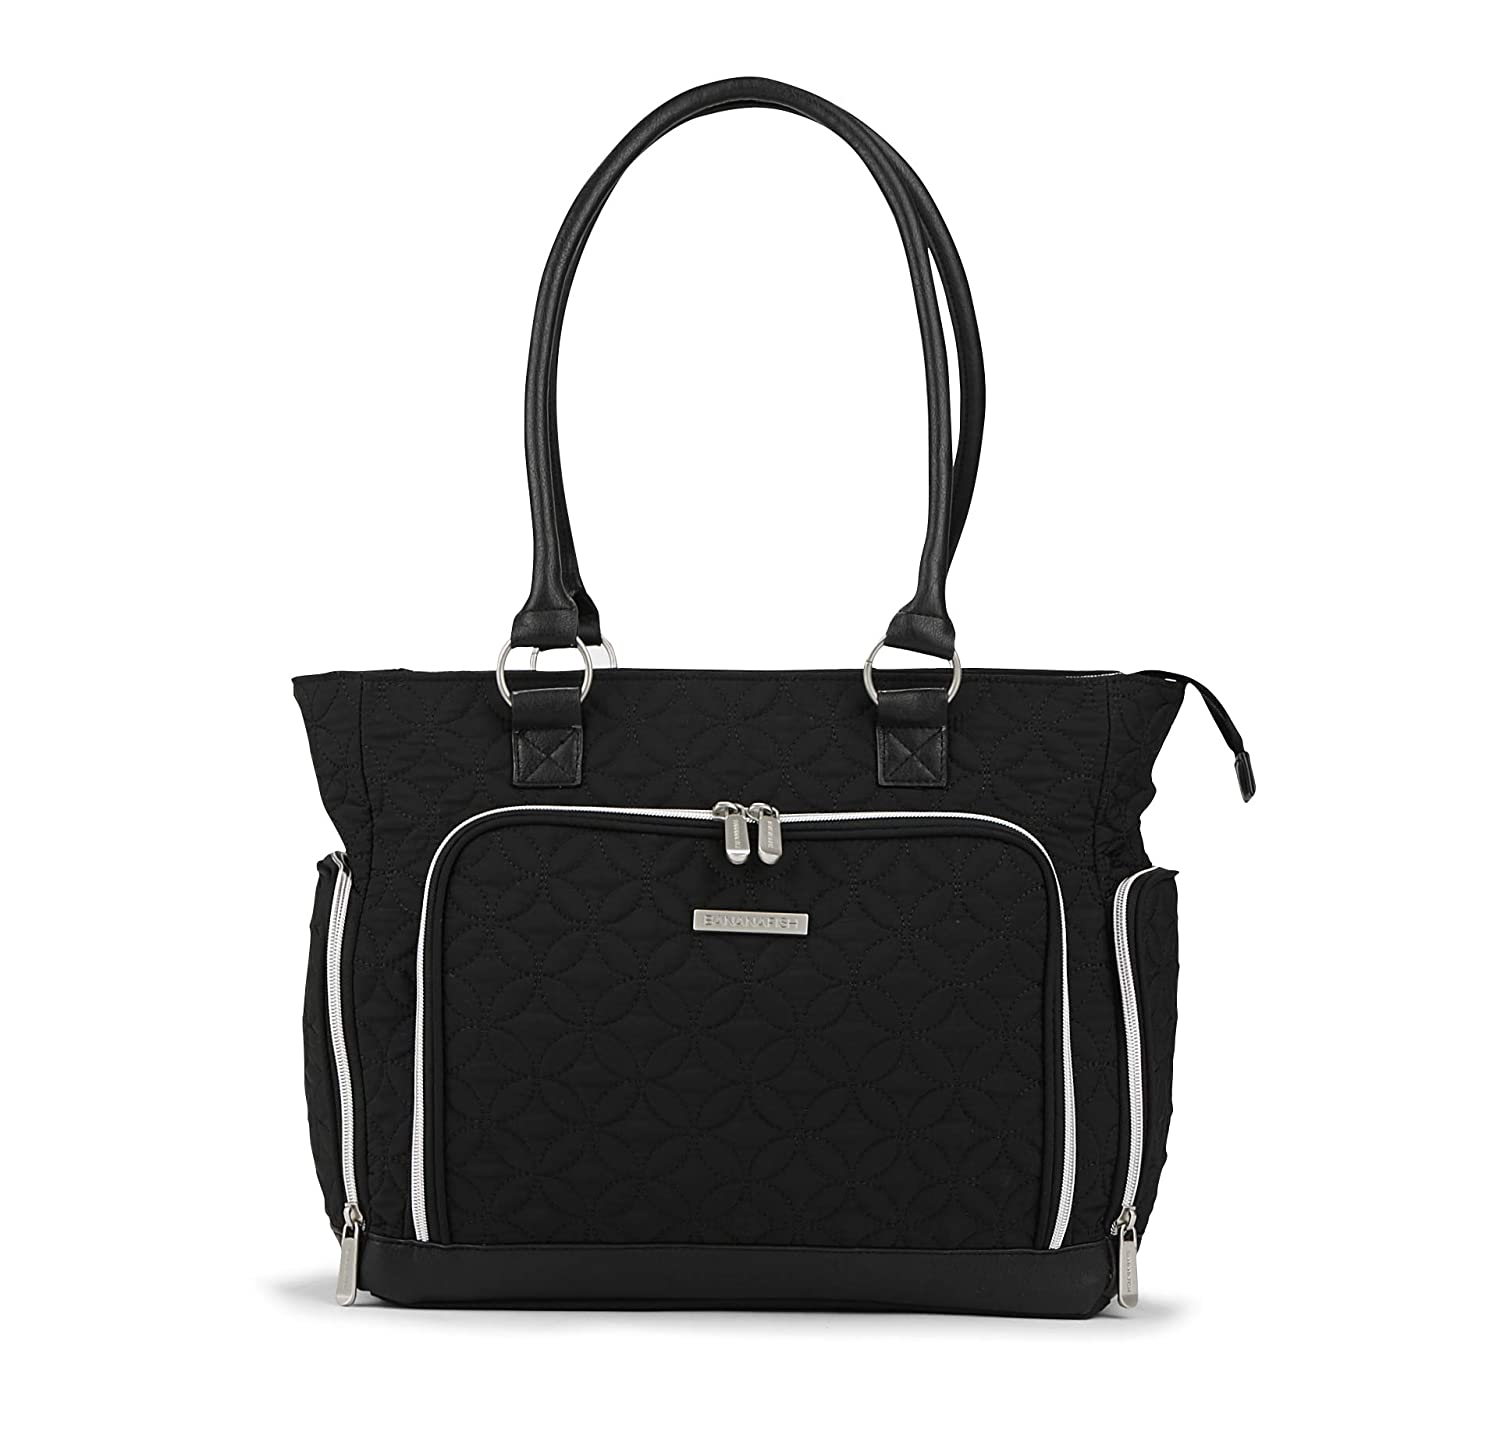 Bananafish Electric Breast Pump Tote Bag Portable Carrying Bag Great for Travel or Storage Accessory and Cooler Pockets Fits Most Major Brands Including Medela and Spectra, Black/Silver